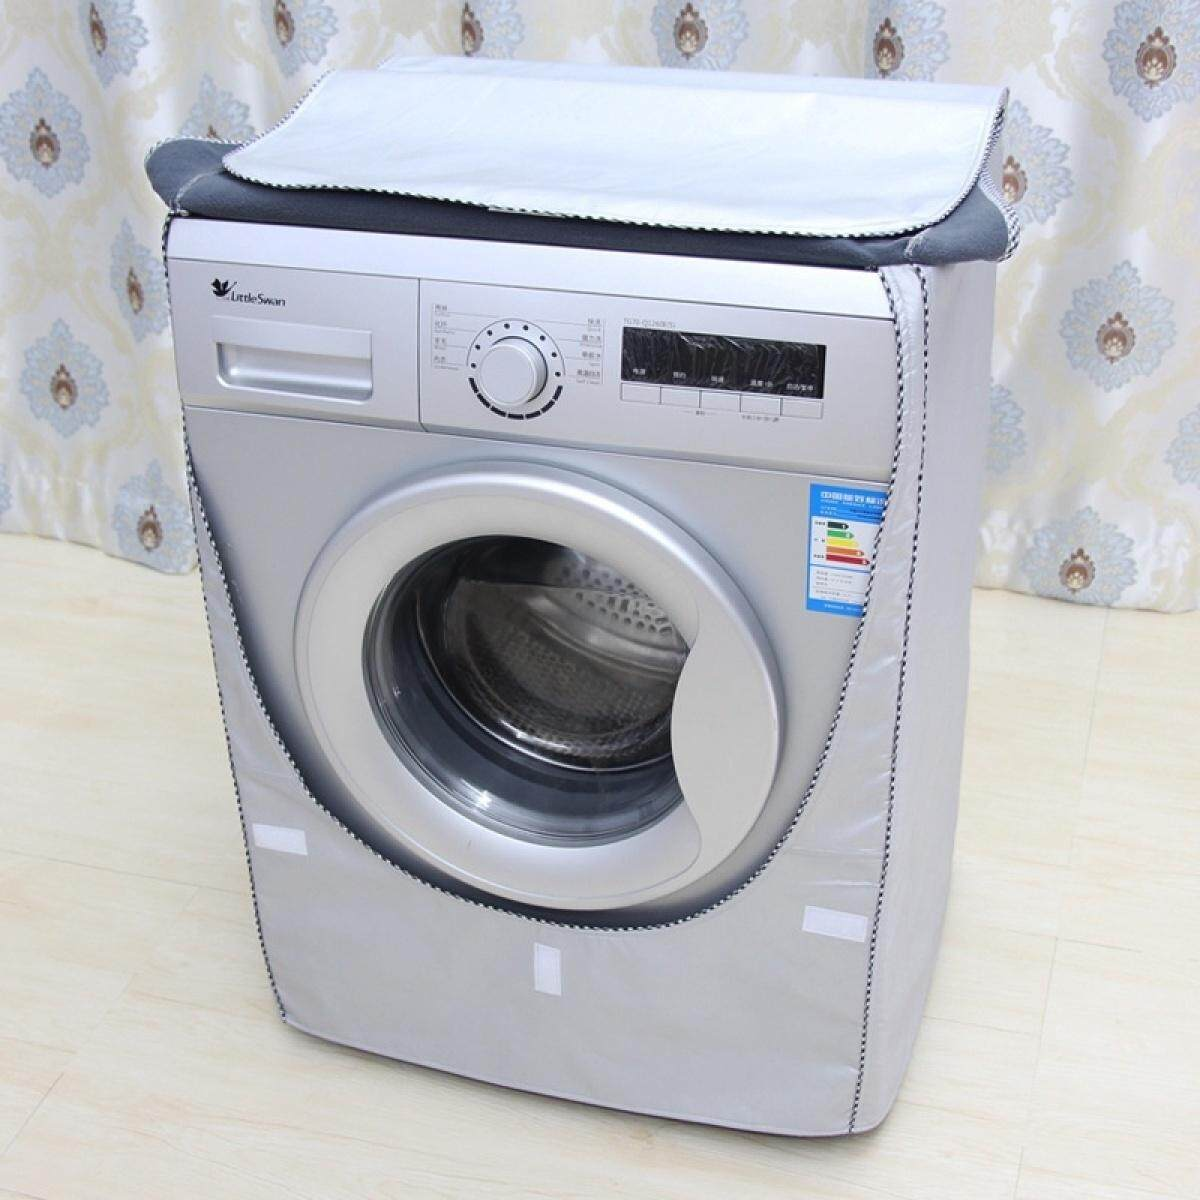 SZ New Painted Silver Oxford Cloth Automatic Drum Washing Machine Cover  Waterproof Sunscreen Sets Washer & Dryer Parts & Accessories SIZE XL